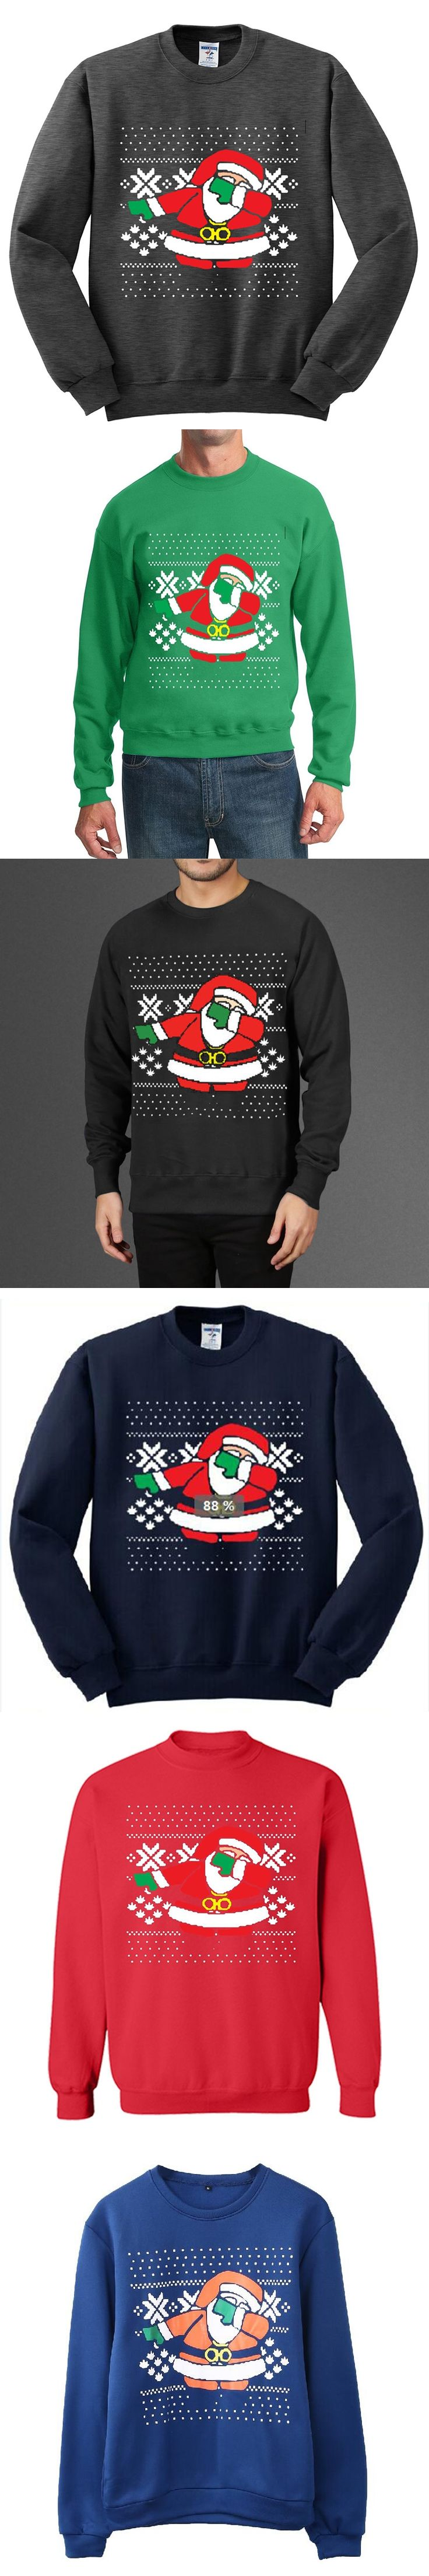 2017Christmas Patton Sweater Santa Claus Casual Print Pullover Sweater Jumper Outwear Man Patterns of Reindeer Snowman Christmas